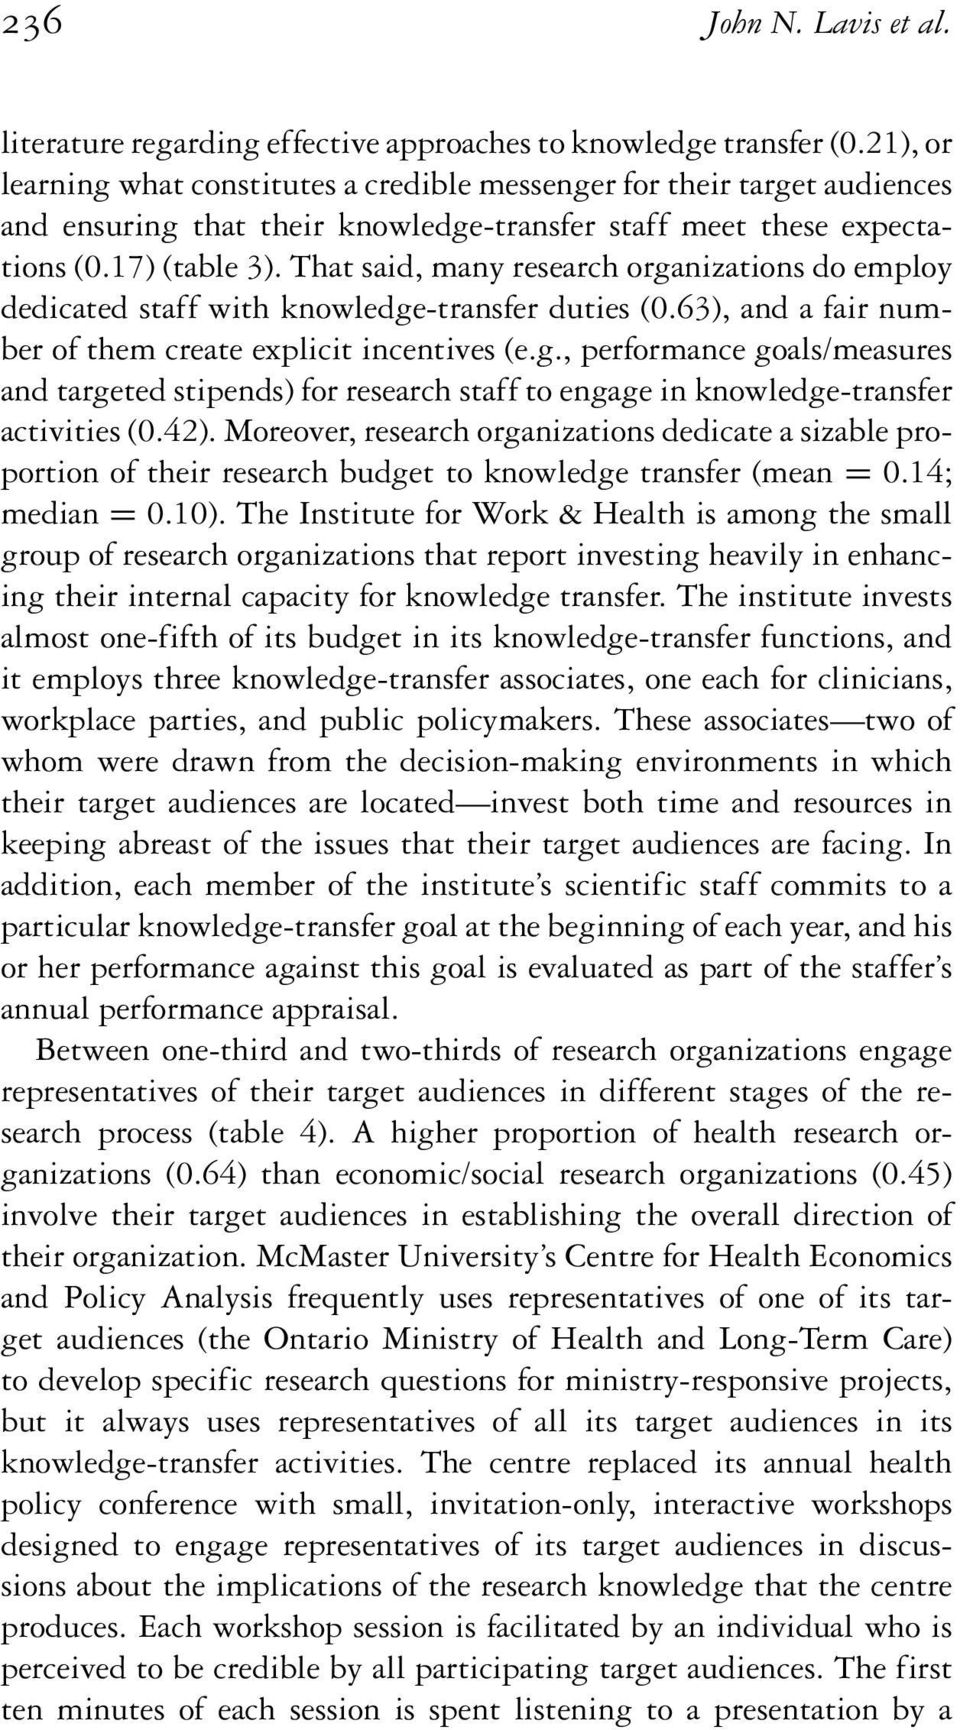 That said, many research organizations do employ dedicated staff with knowledge-transfer duties (0.63), and a fair number of them create explicit incentives (e.g., performance goals/measures and targeted stipends) for research staff to engage in knowledge-transfer activities (0.